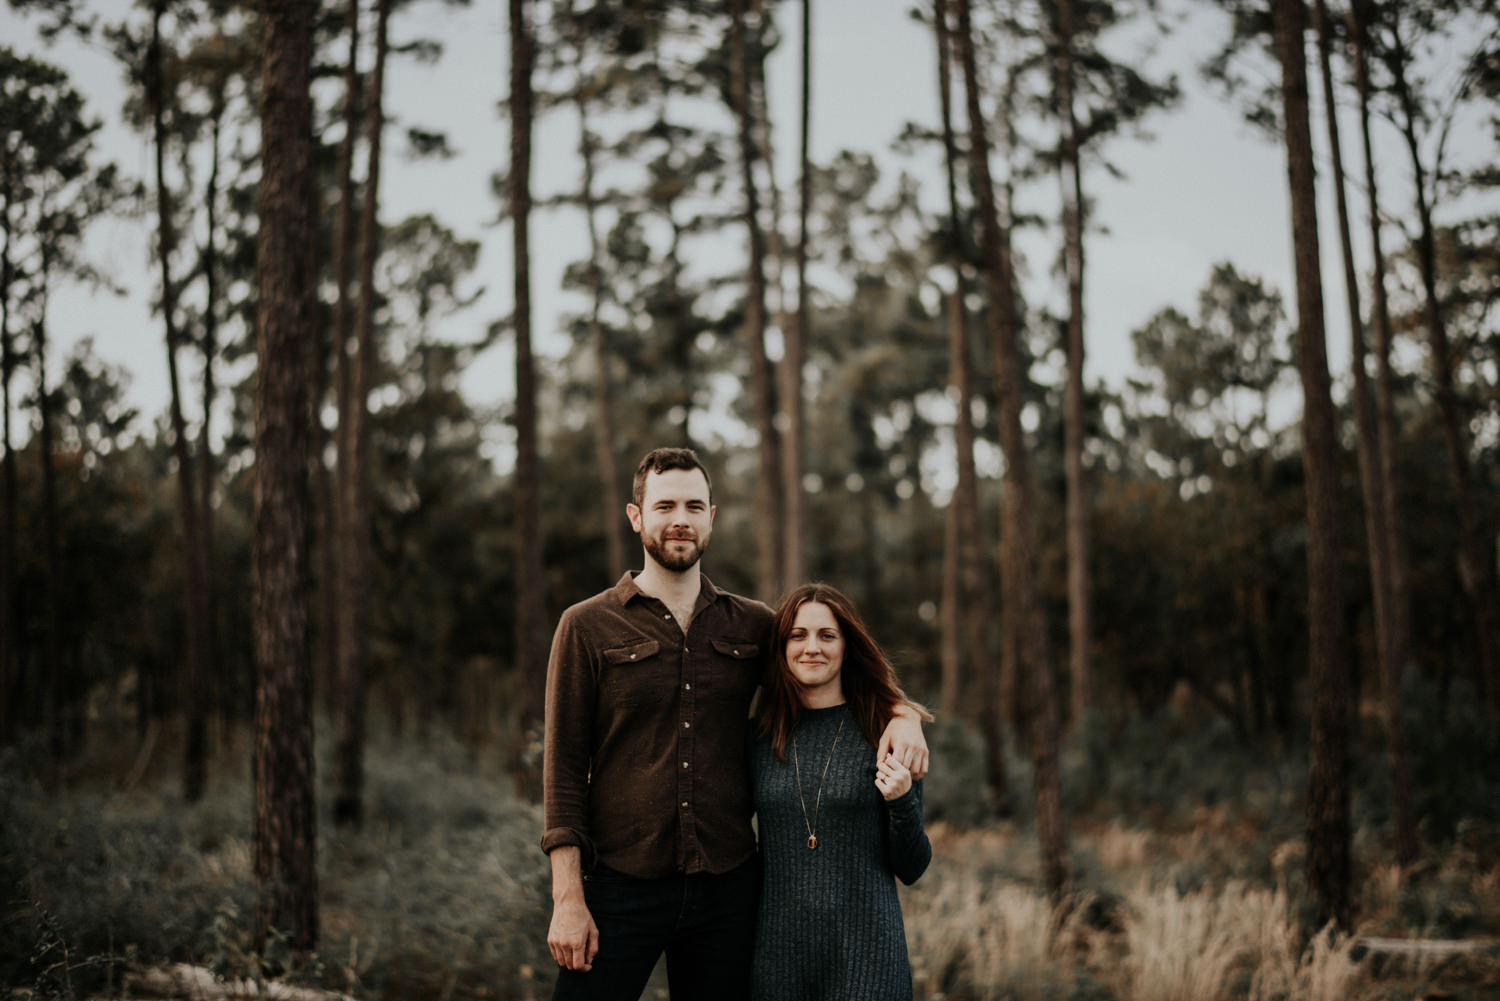 Engagement Photography in Pine Trees